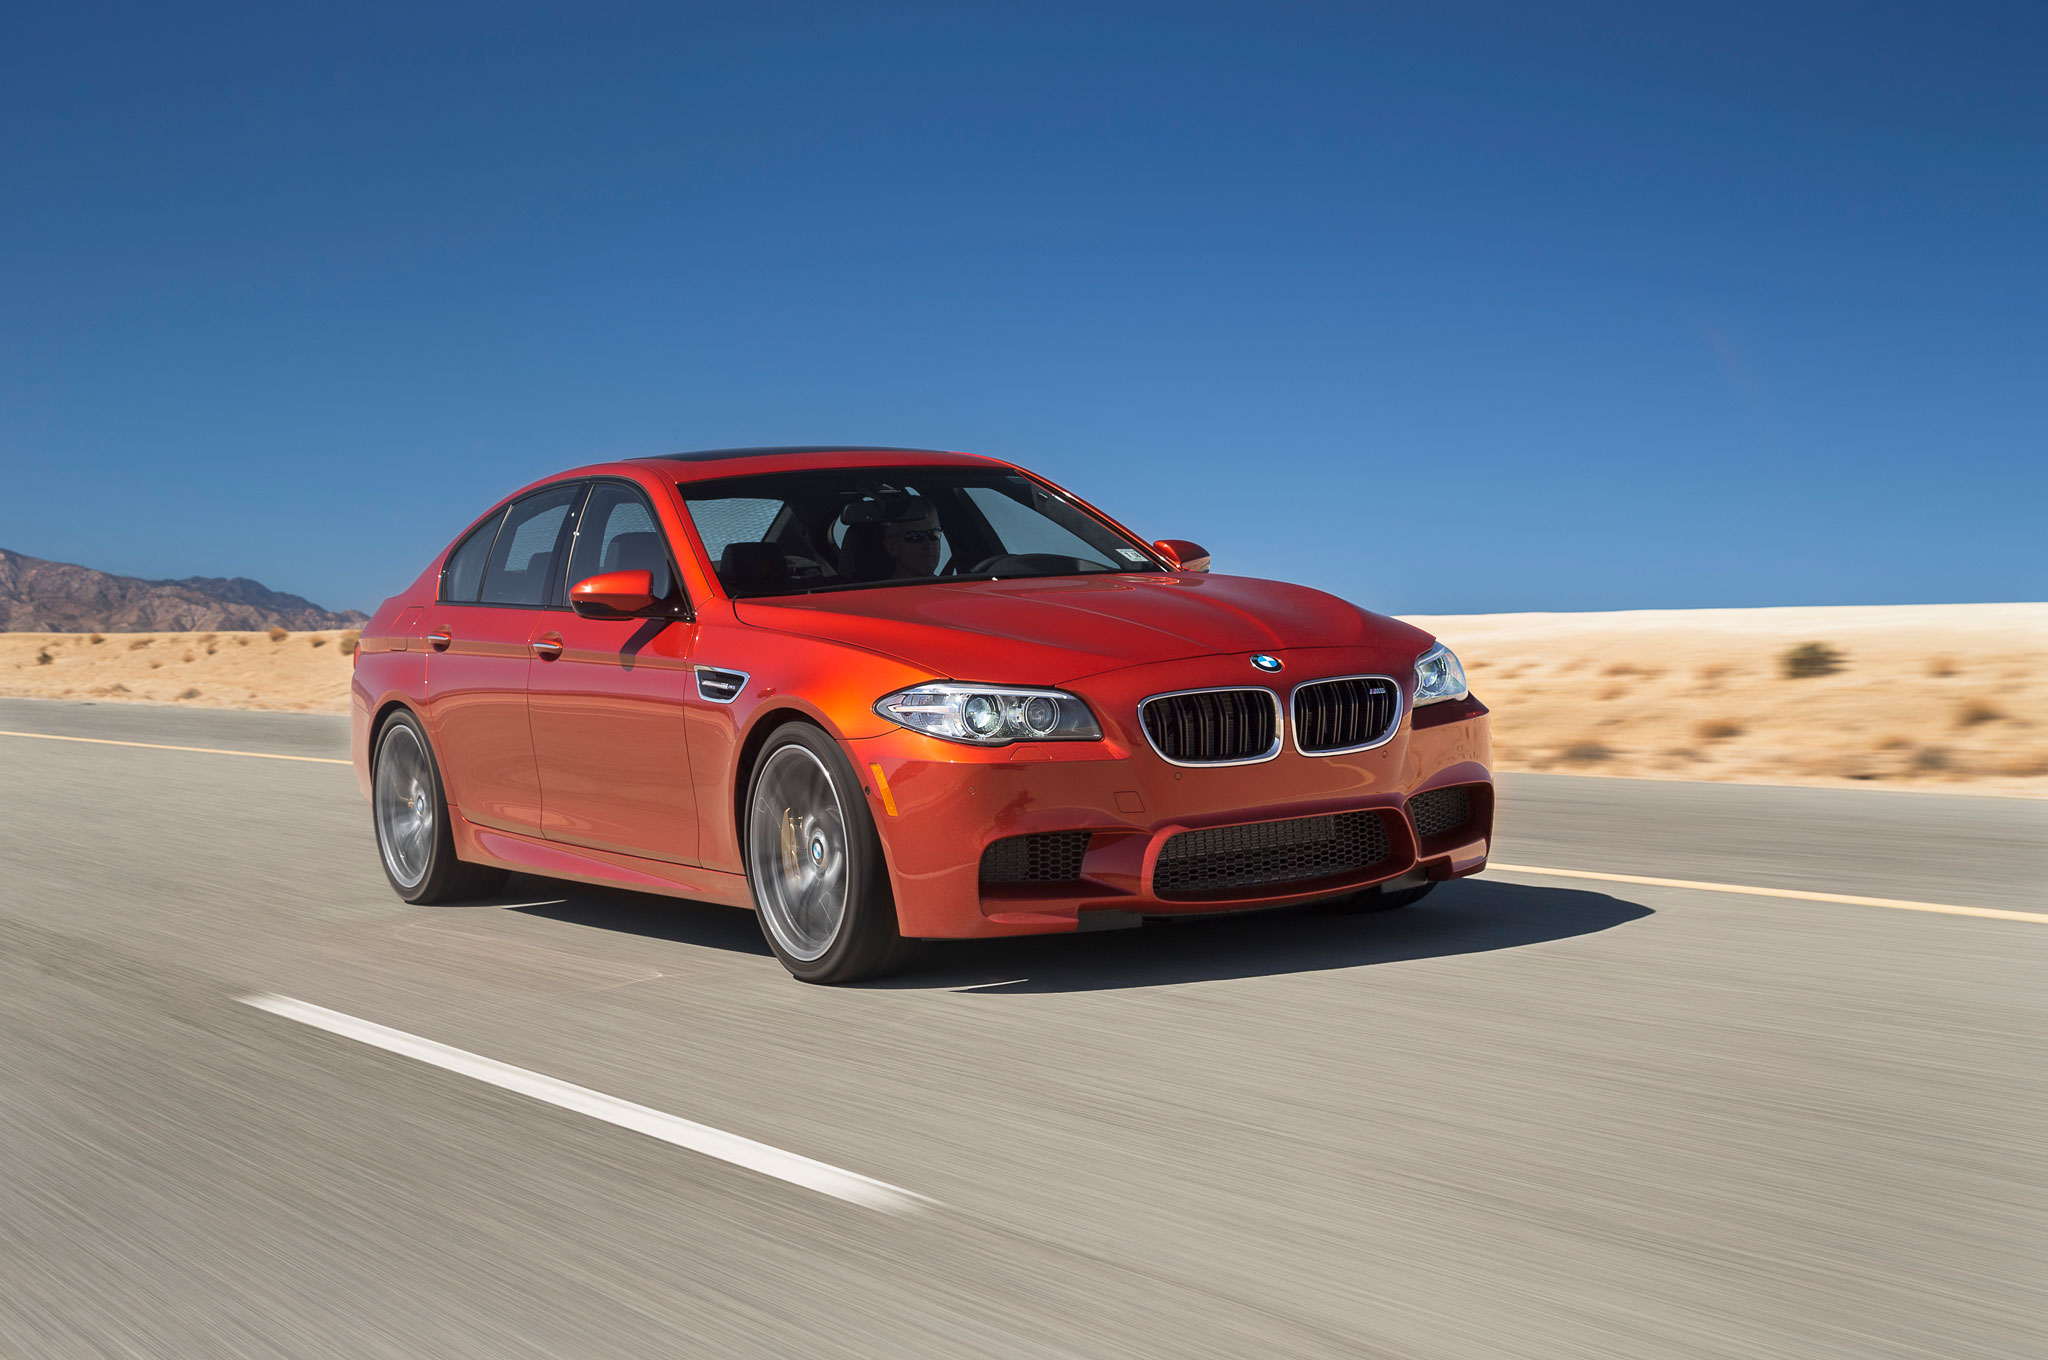 2014 Motor Trend Car of the Year Contender BMW 5 Series Motor Trend